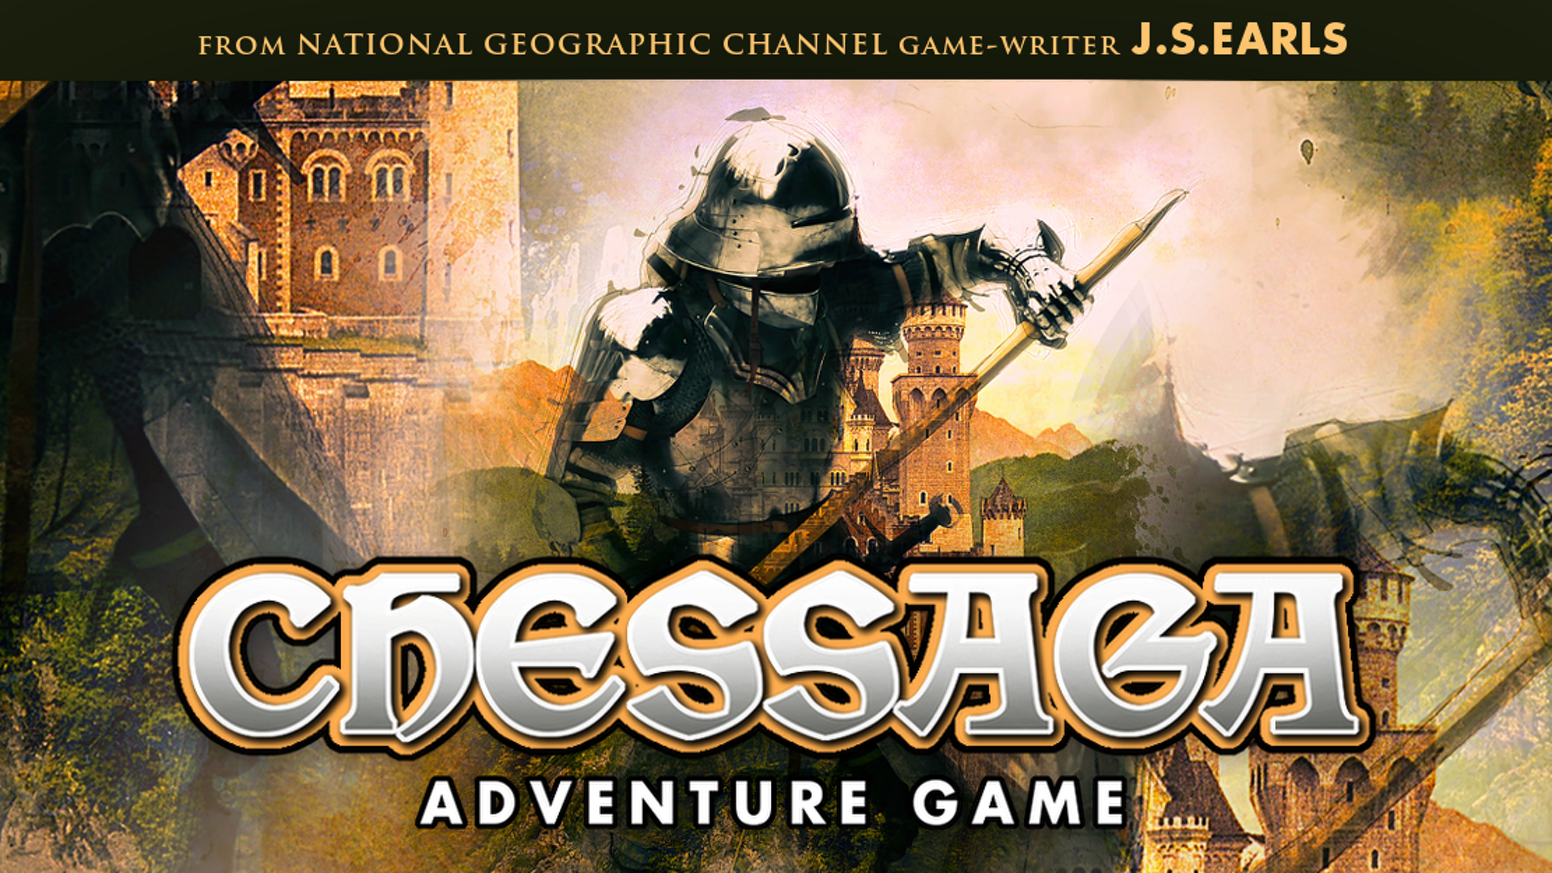 CHESSaga is a fantasy/chess game where players take their chess pieces on story-driven journeys across custom game-maps!